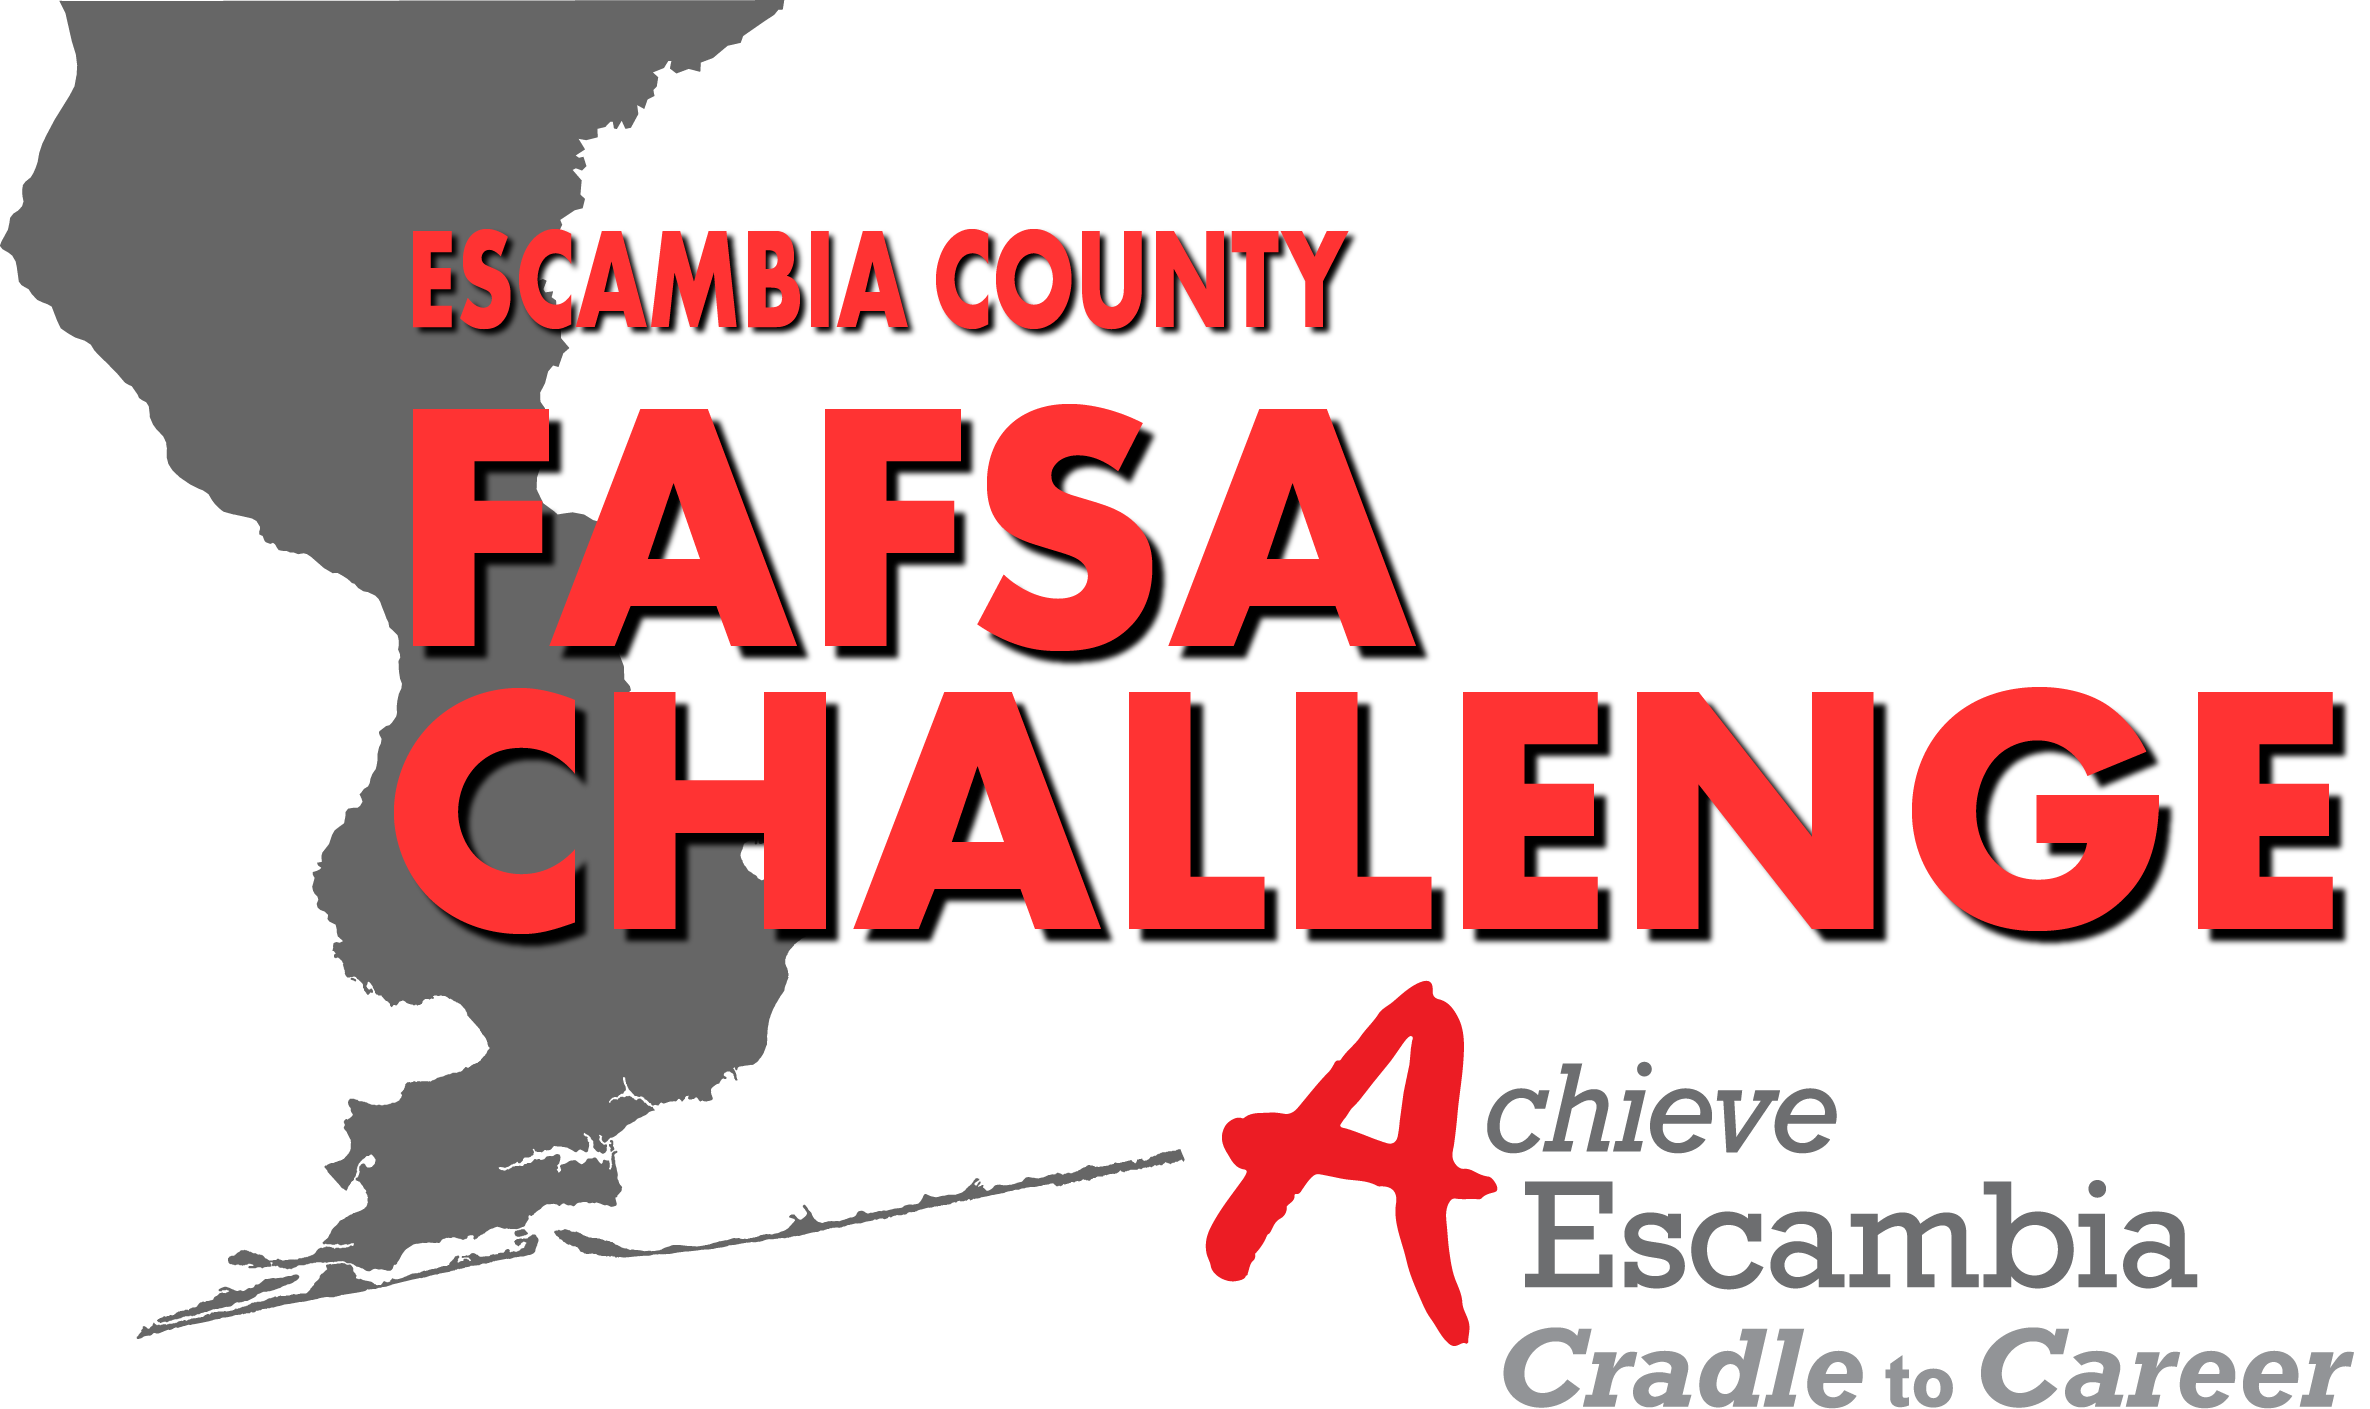 FAFSA_Challenge_Achieve_Escambia_Logo_White_Background1.png